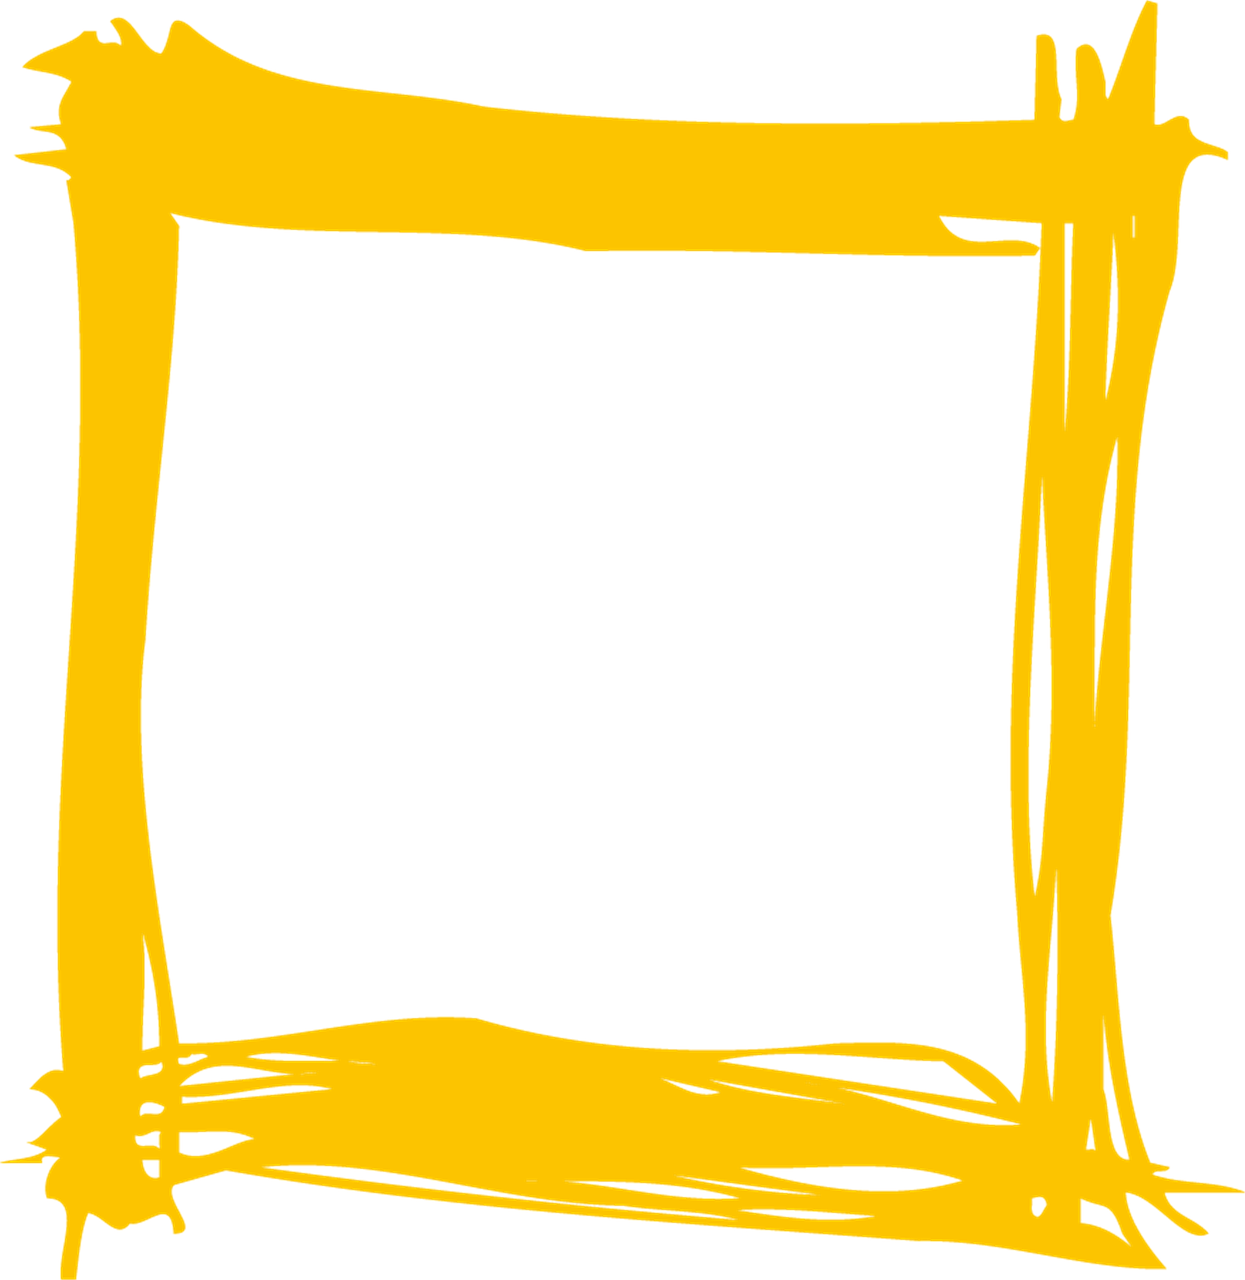 Free Yellow Frame Png, Download Free Clip Art, Free Clip Art.